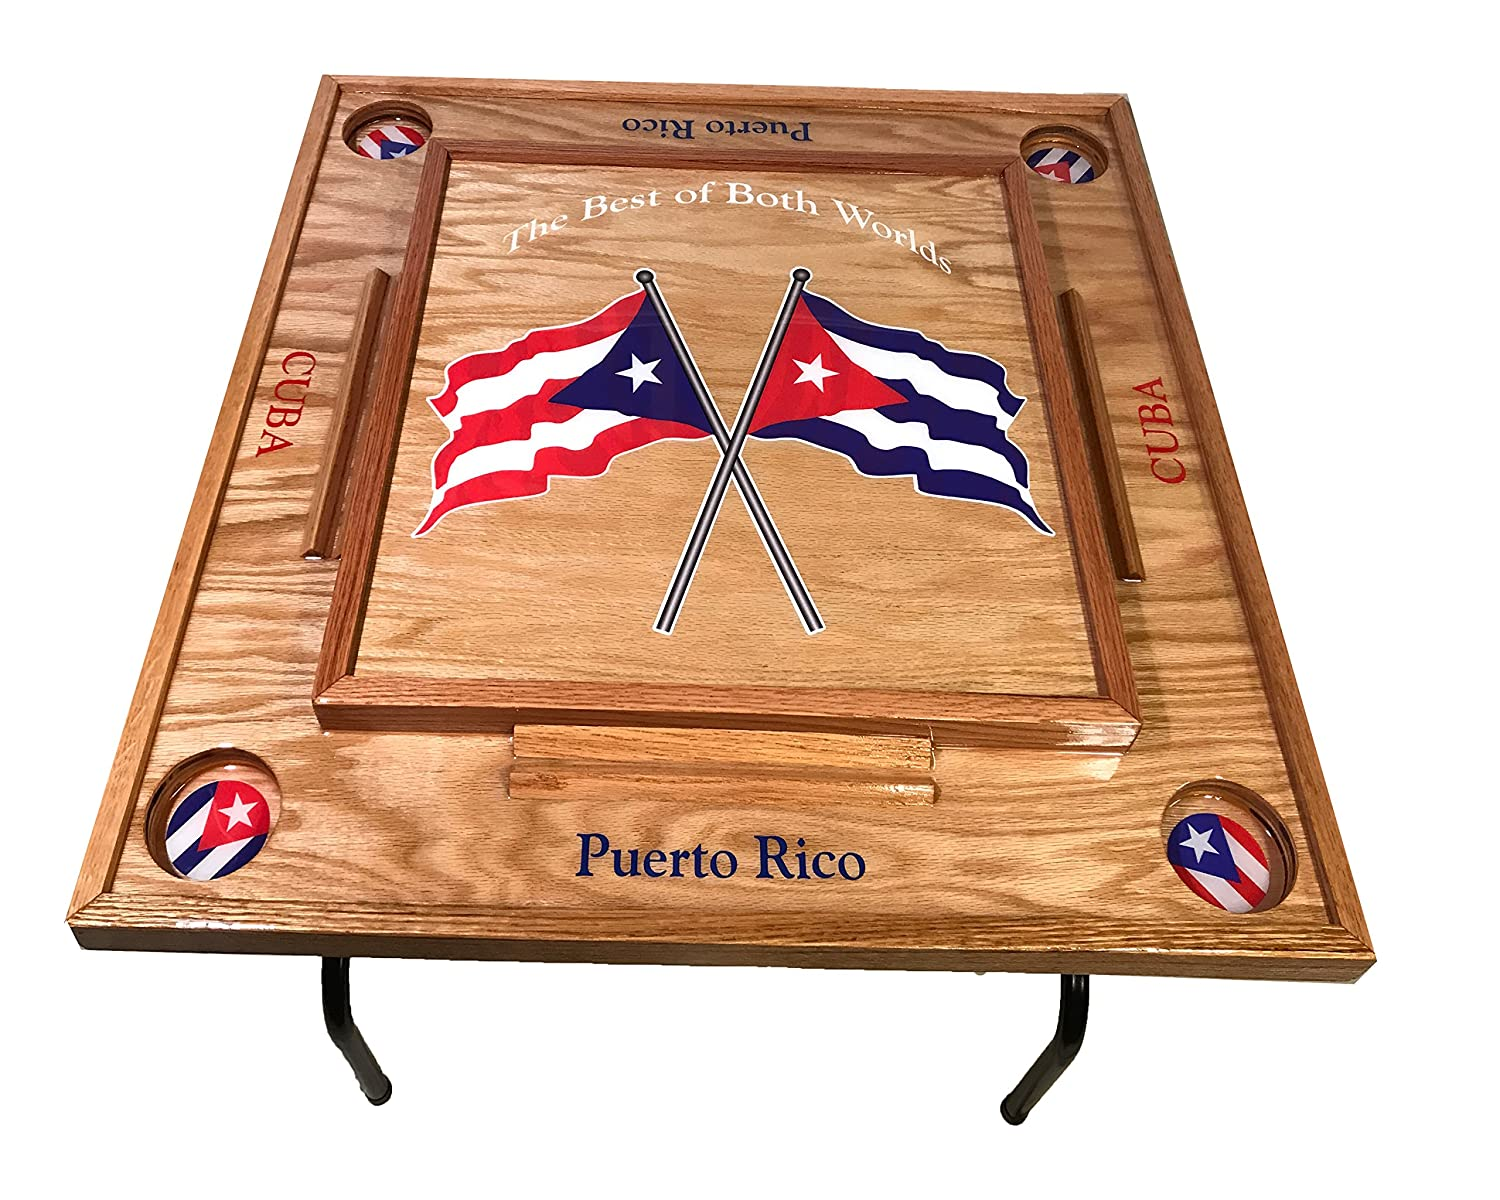 Puerto Rico & Cuba Domino Table latinos R us